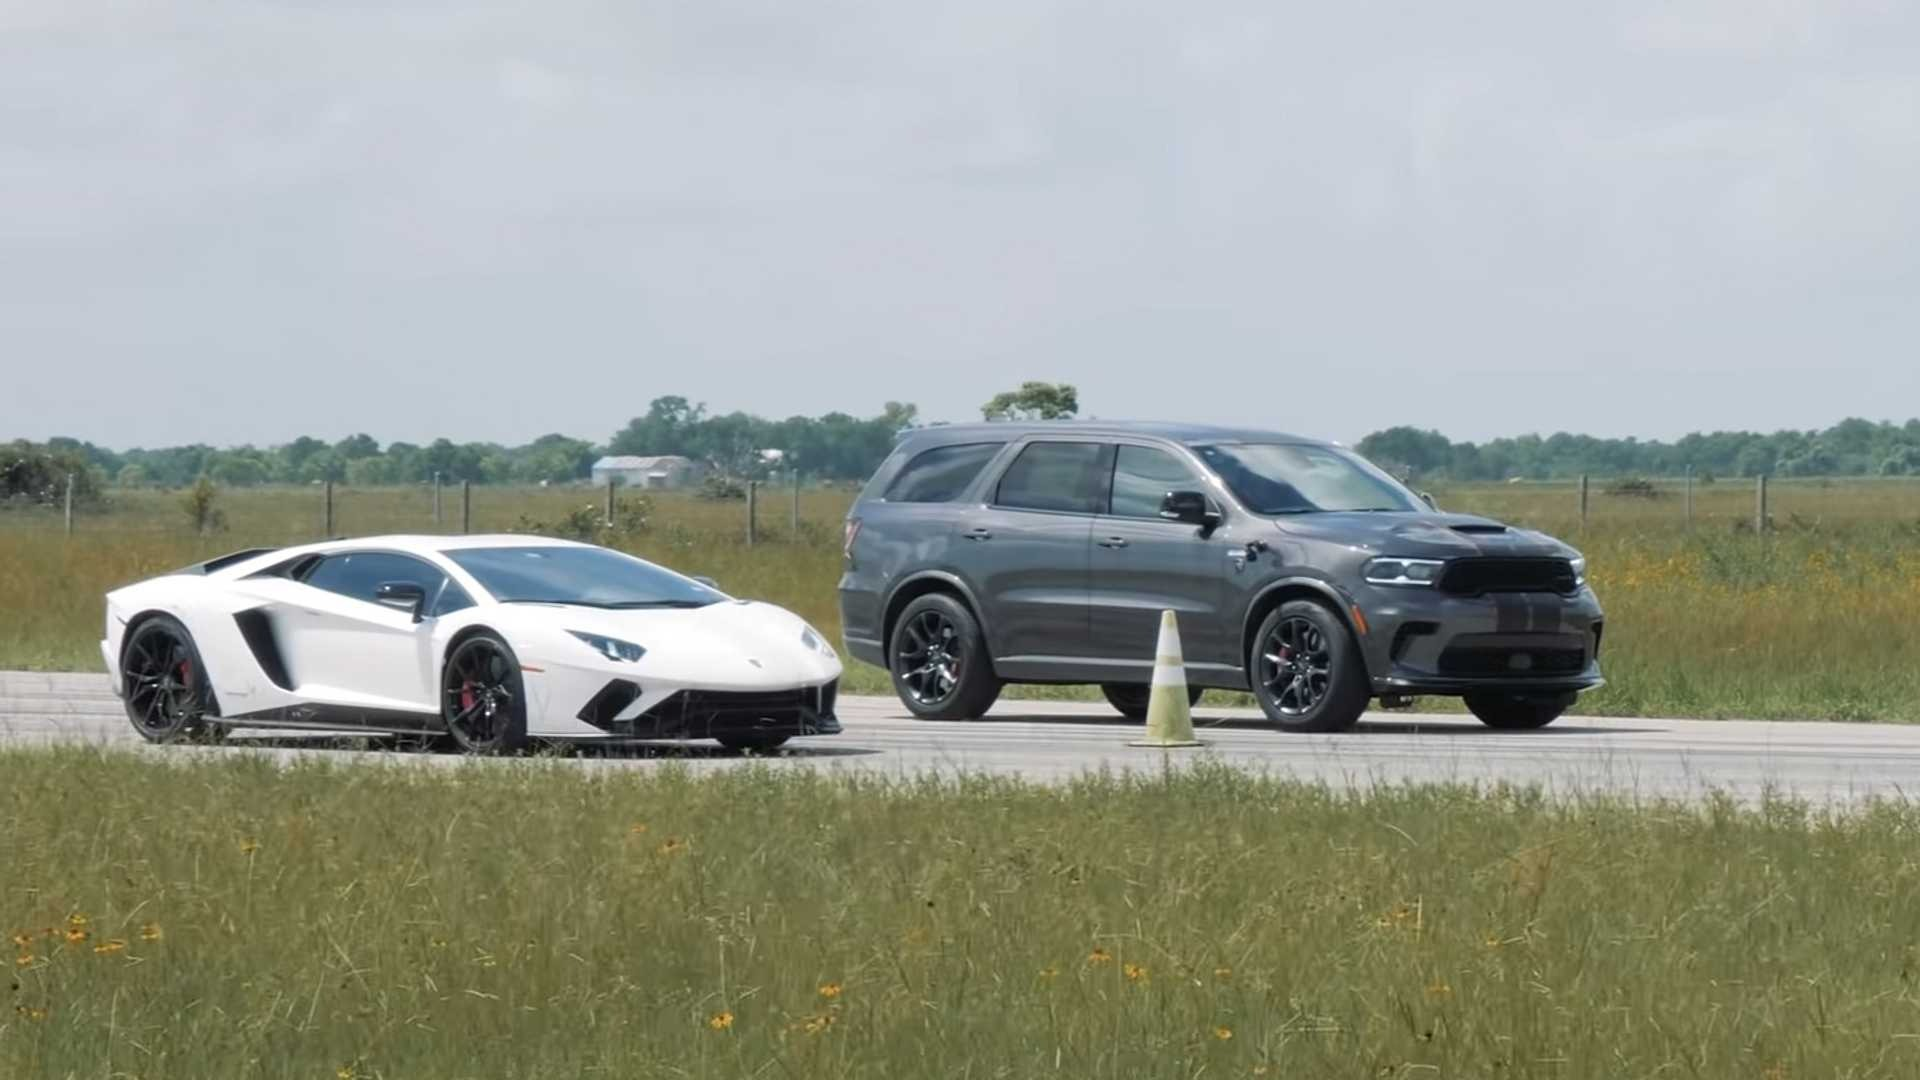 Texan tuning house Hennessey Performance is working on an HPE 1000 power upgrade for the Dodge Durango SRT Hellcat, and has recently raced its test vehicle against a Lamborghini Aventador S. Shall we cry foul?